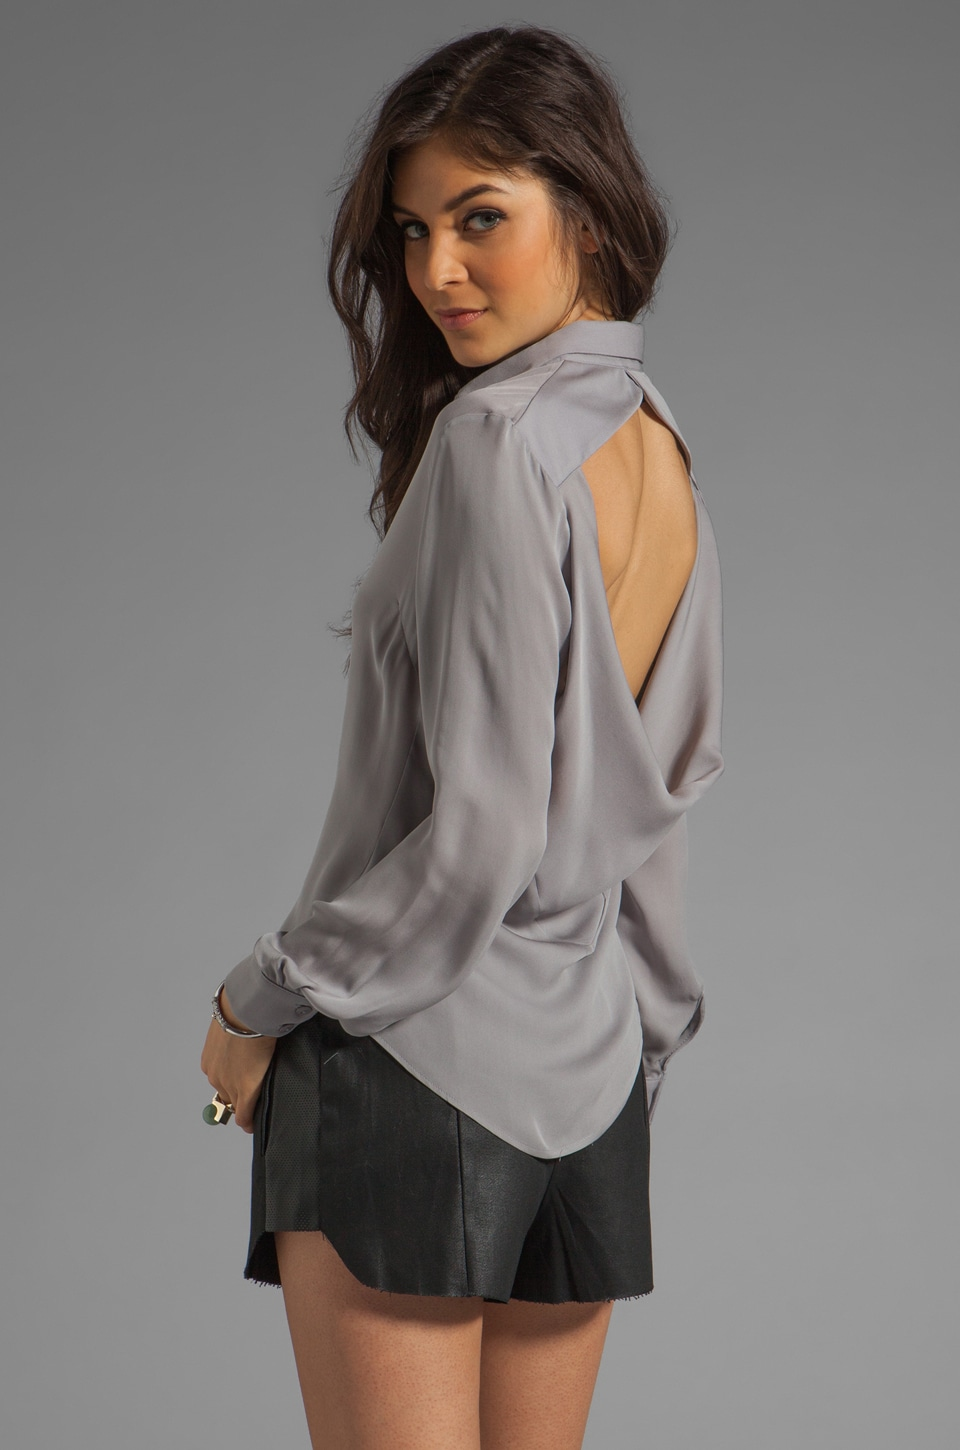 Boulee Tasha Top in Grey